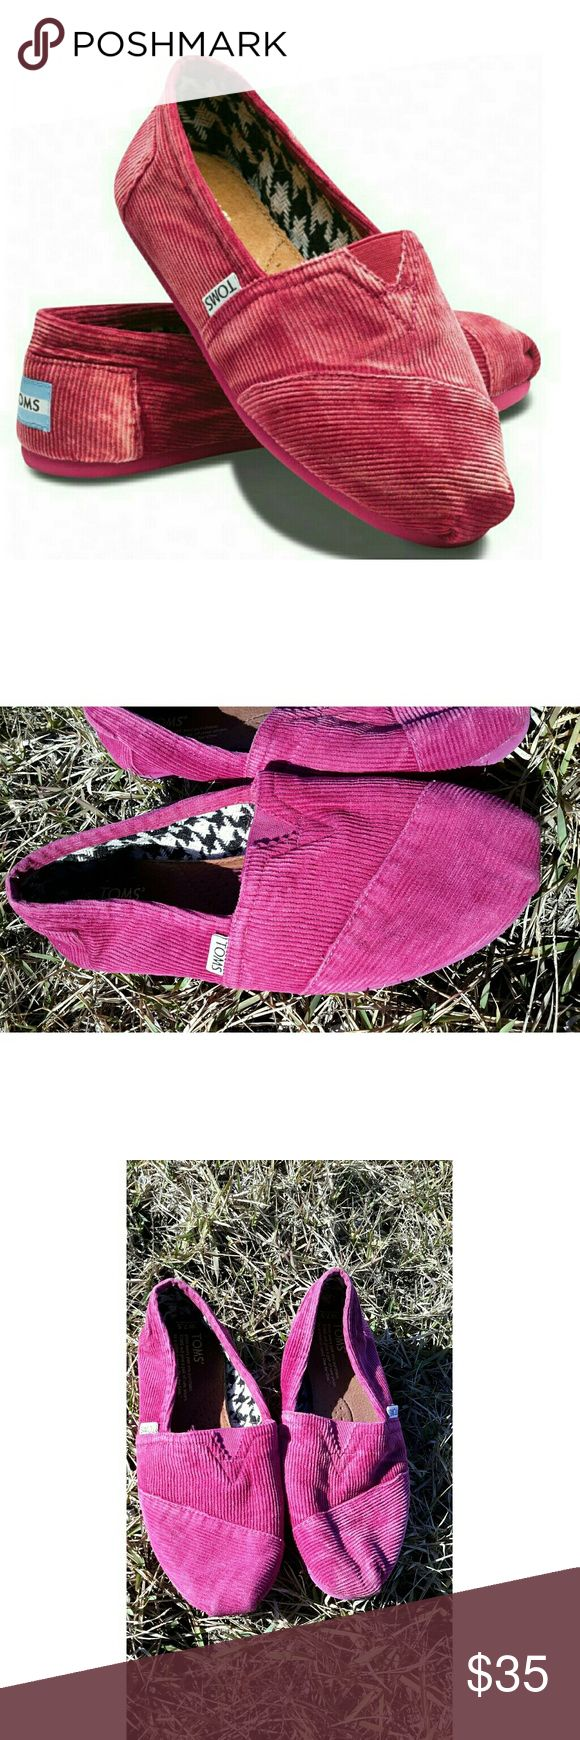 Sherry Stone Washed Cord Classic Pink Toms Shoes Size 7.5 W Gorgeous pink corduroy Toms. Has wear on bottom. Overall great condition. Side has some markings. Without original box. Questions are welcomed. Toms Shoes